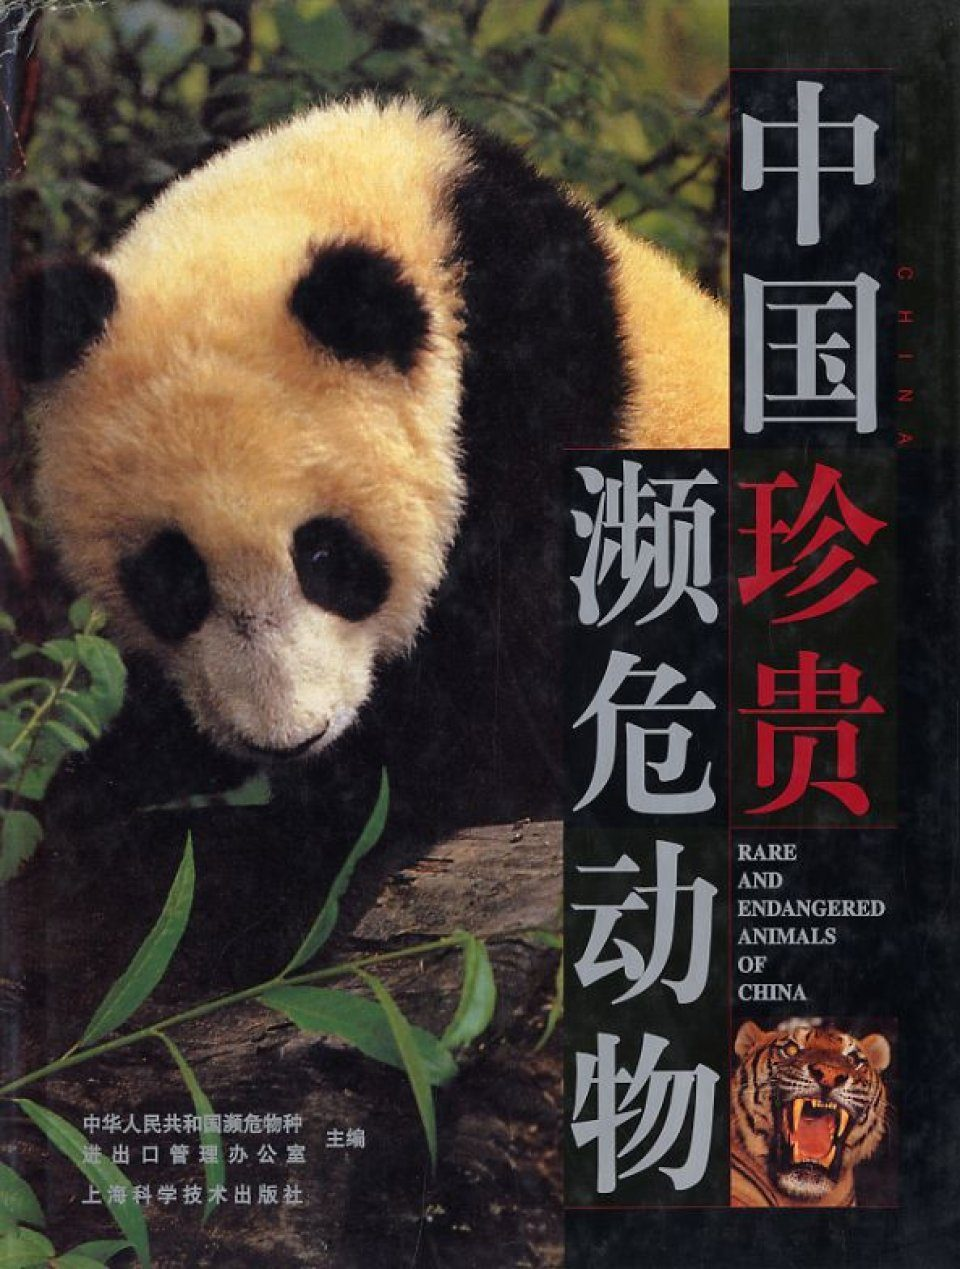 Rare and Endangered Animals of China [Chinese]